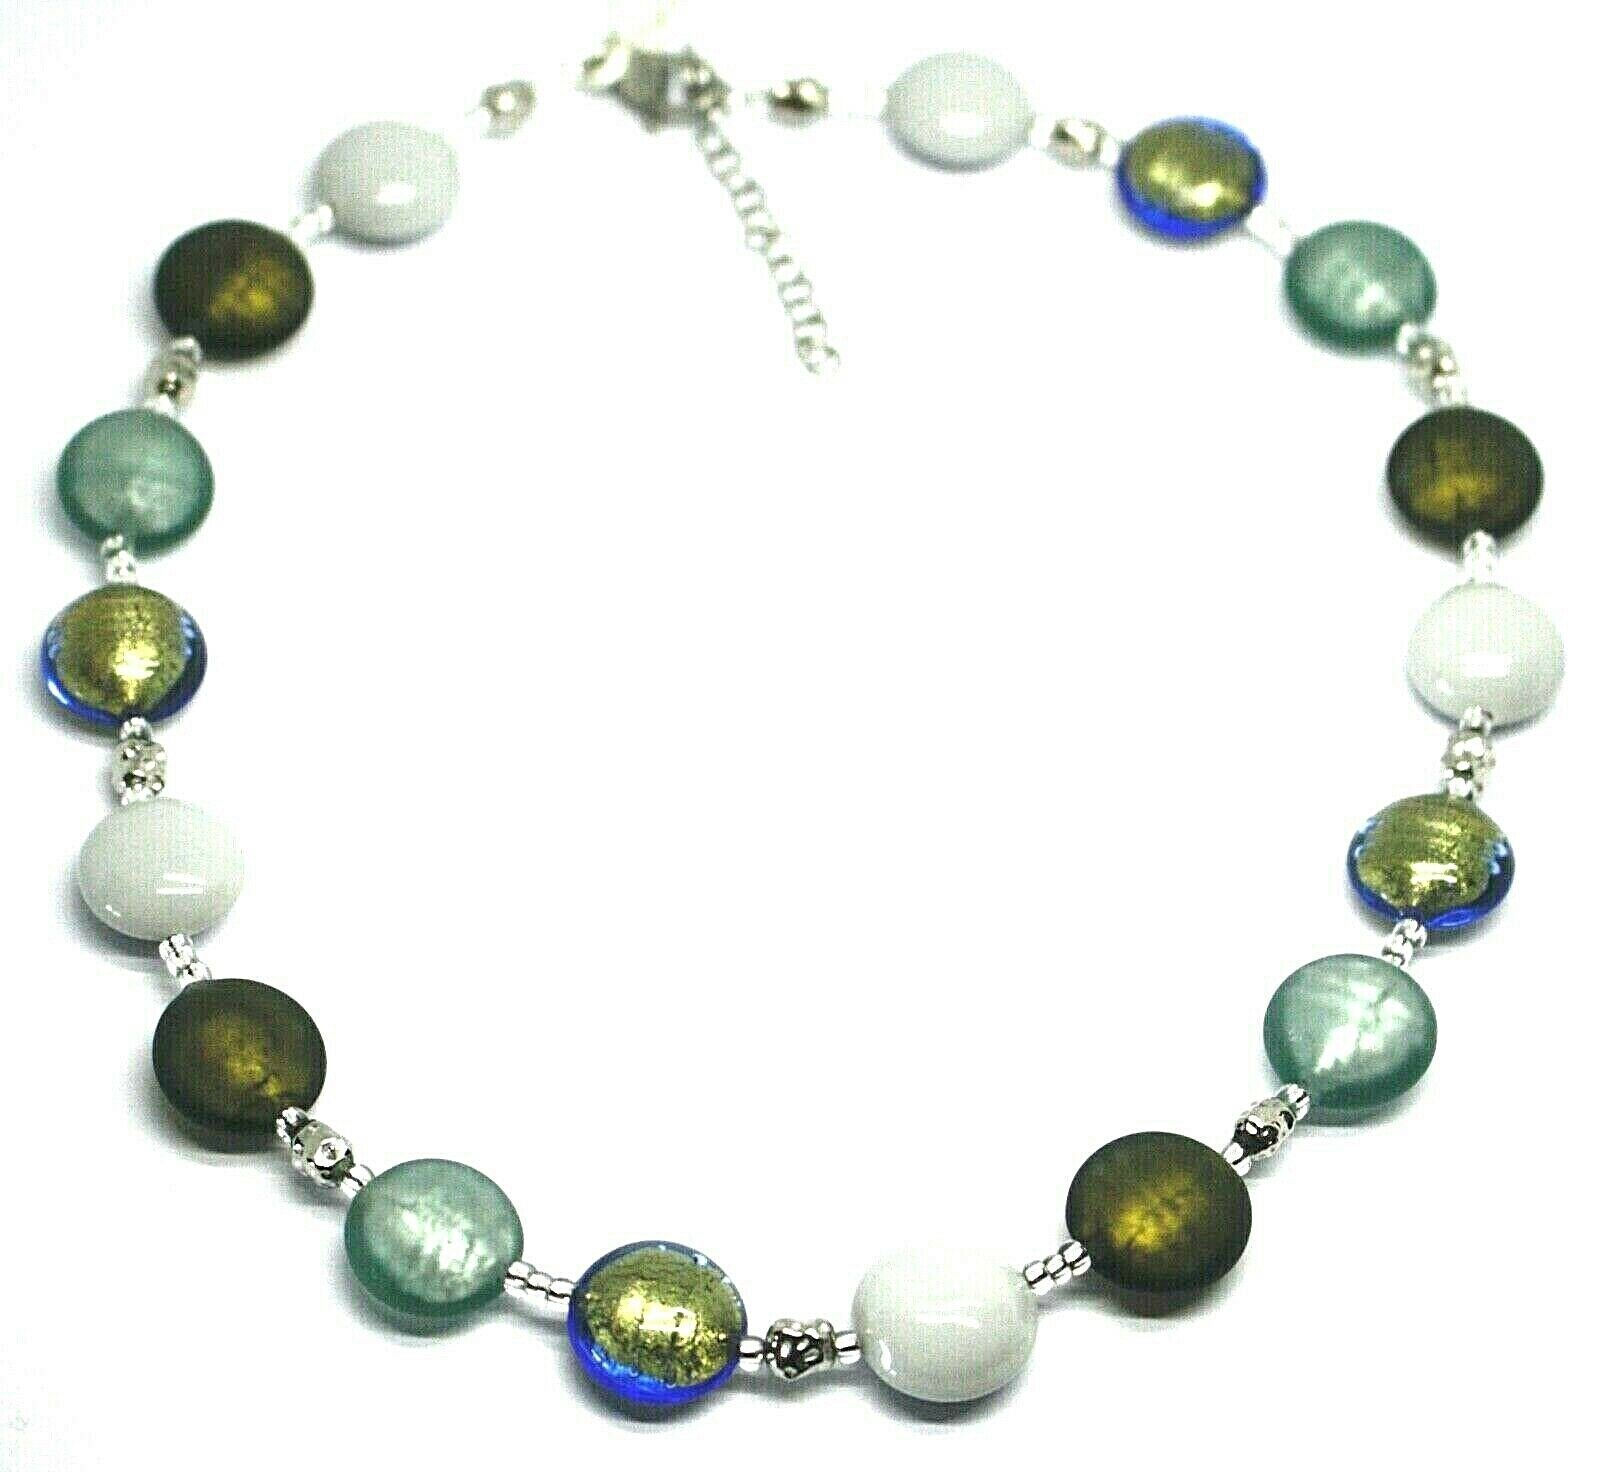 "NECKLACE WHITE GREEN BLUE ROUNDED MURANO GLASS DISC, 45cm 18"", MADE IN ITALY"